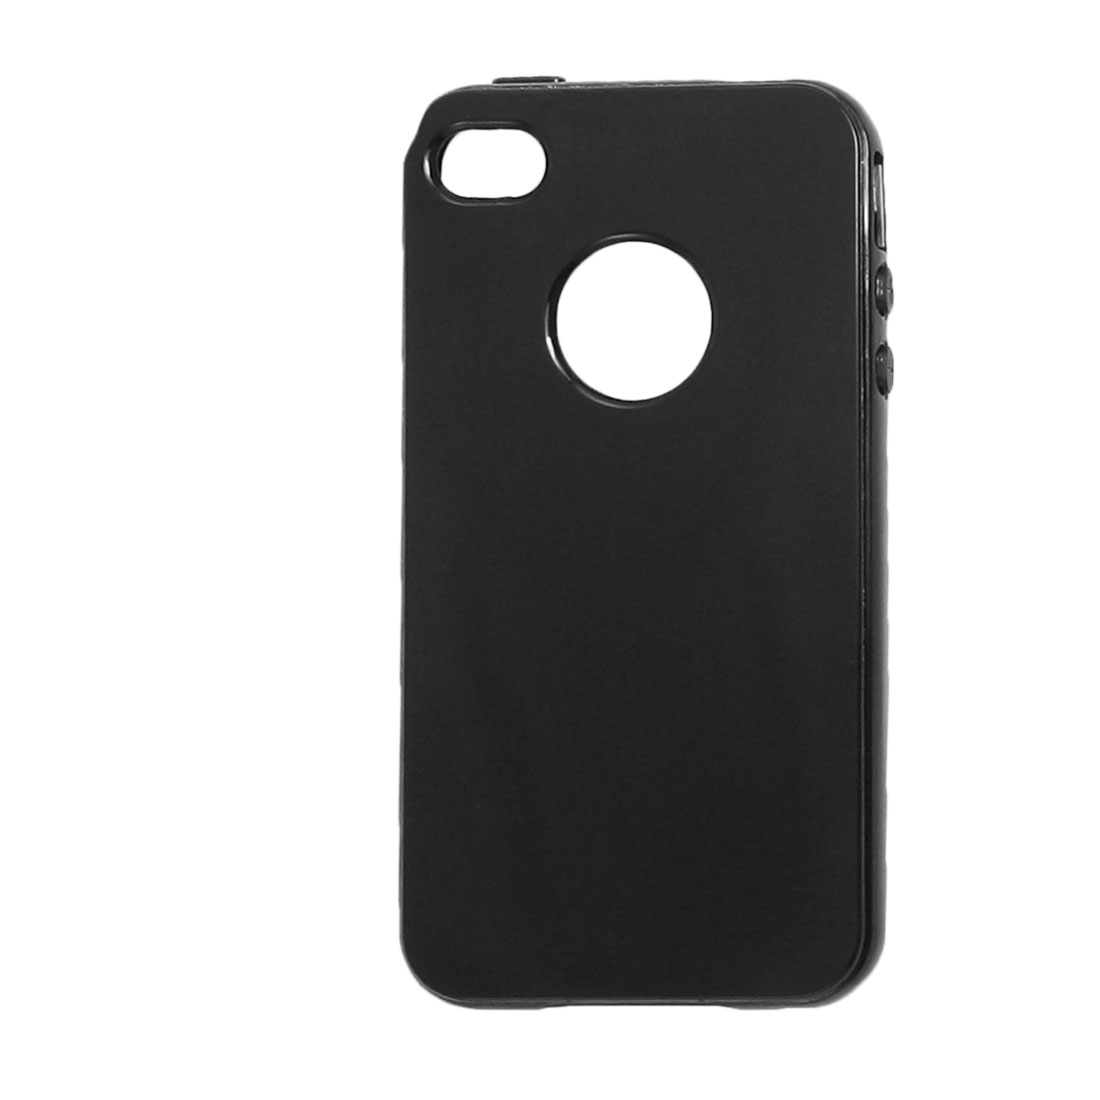 TPU Soft Plastic Black Case Cover Shell for iPhone 4 4GS